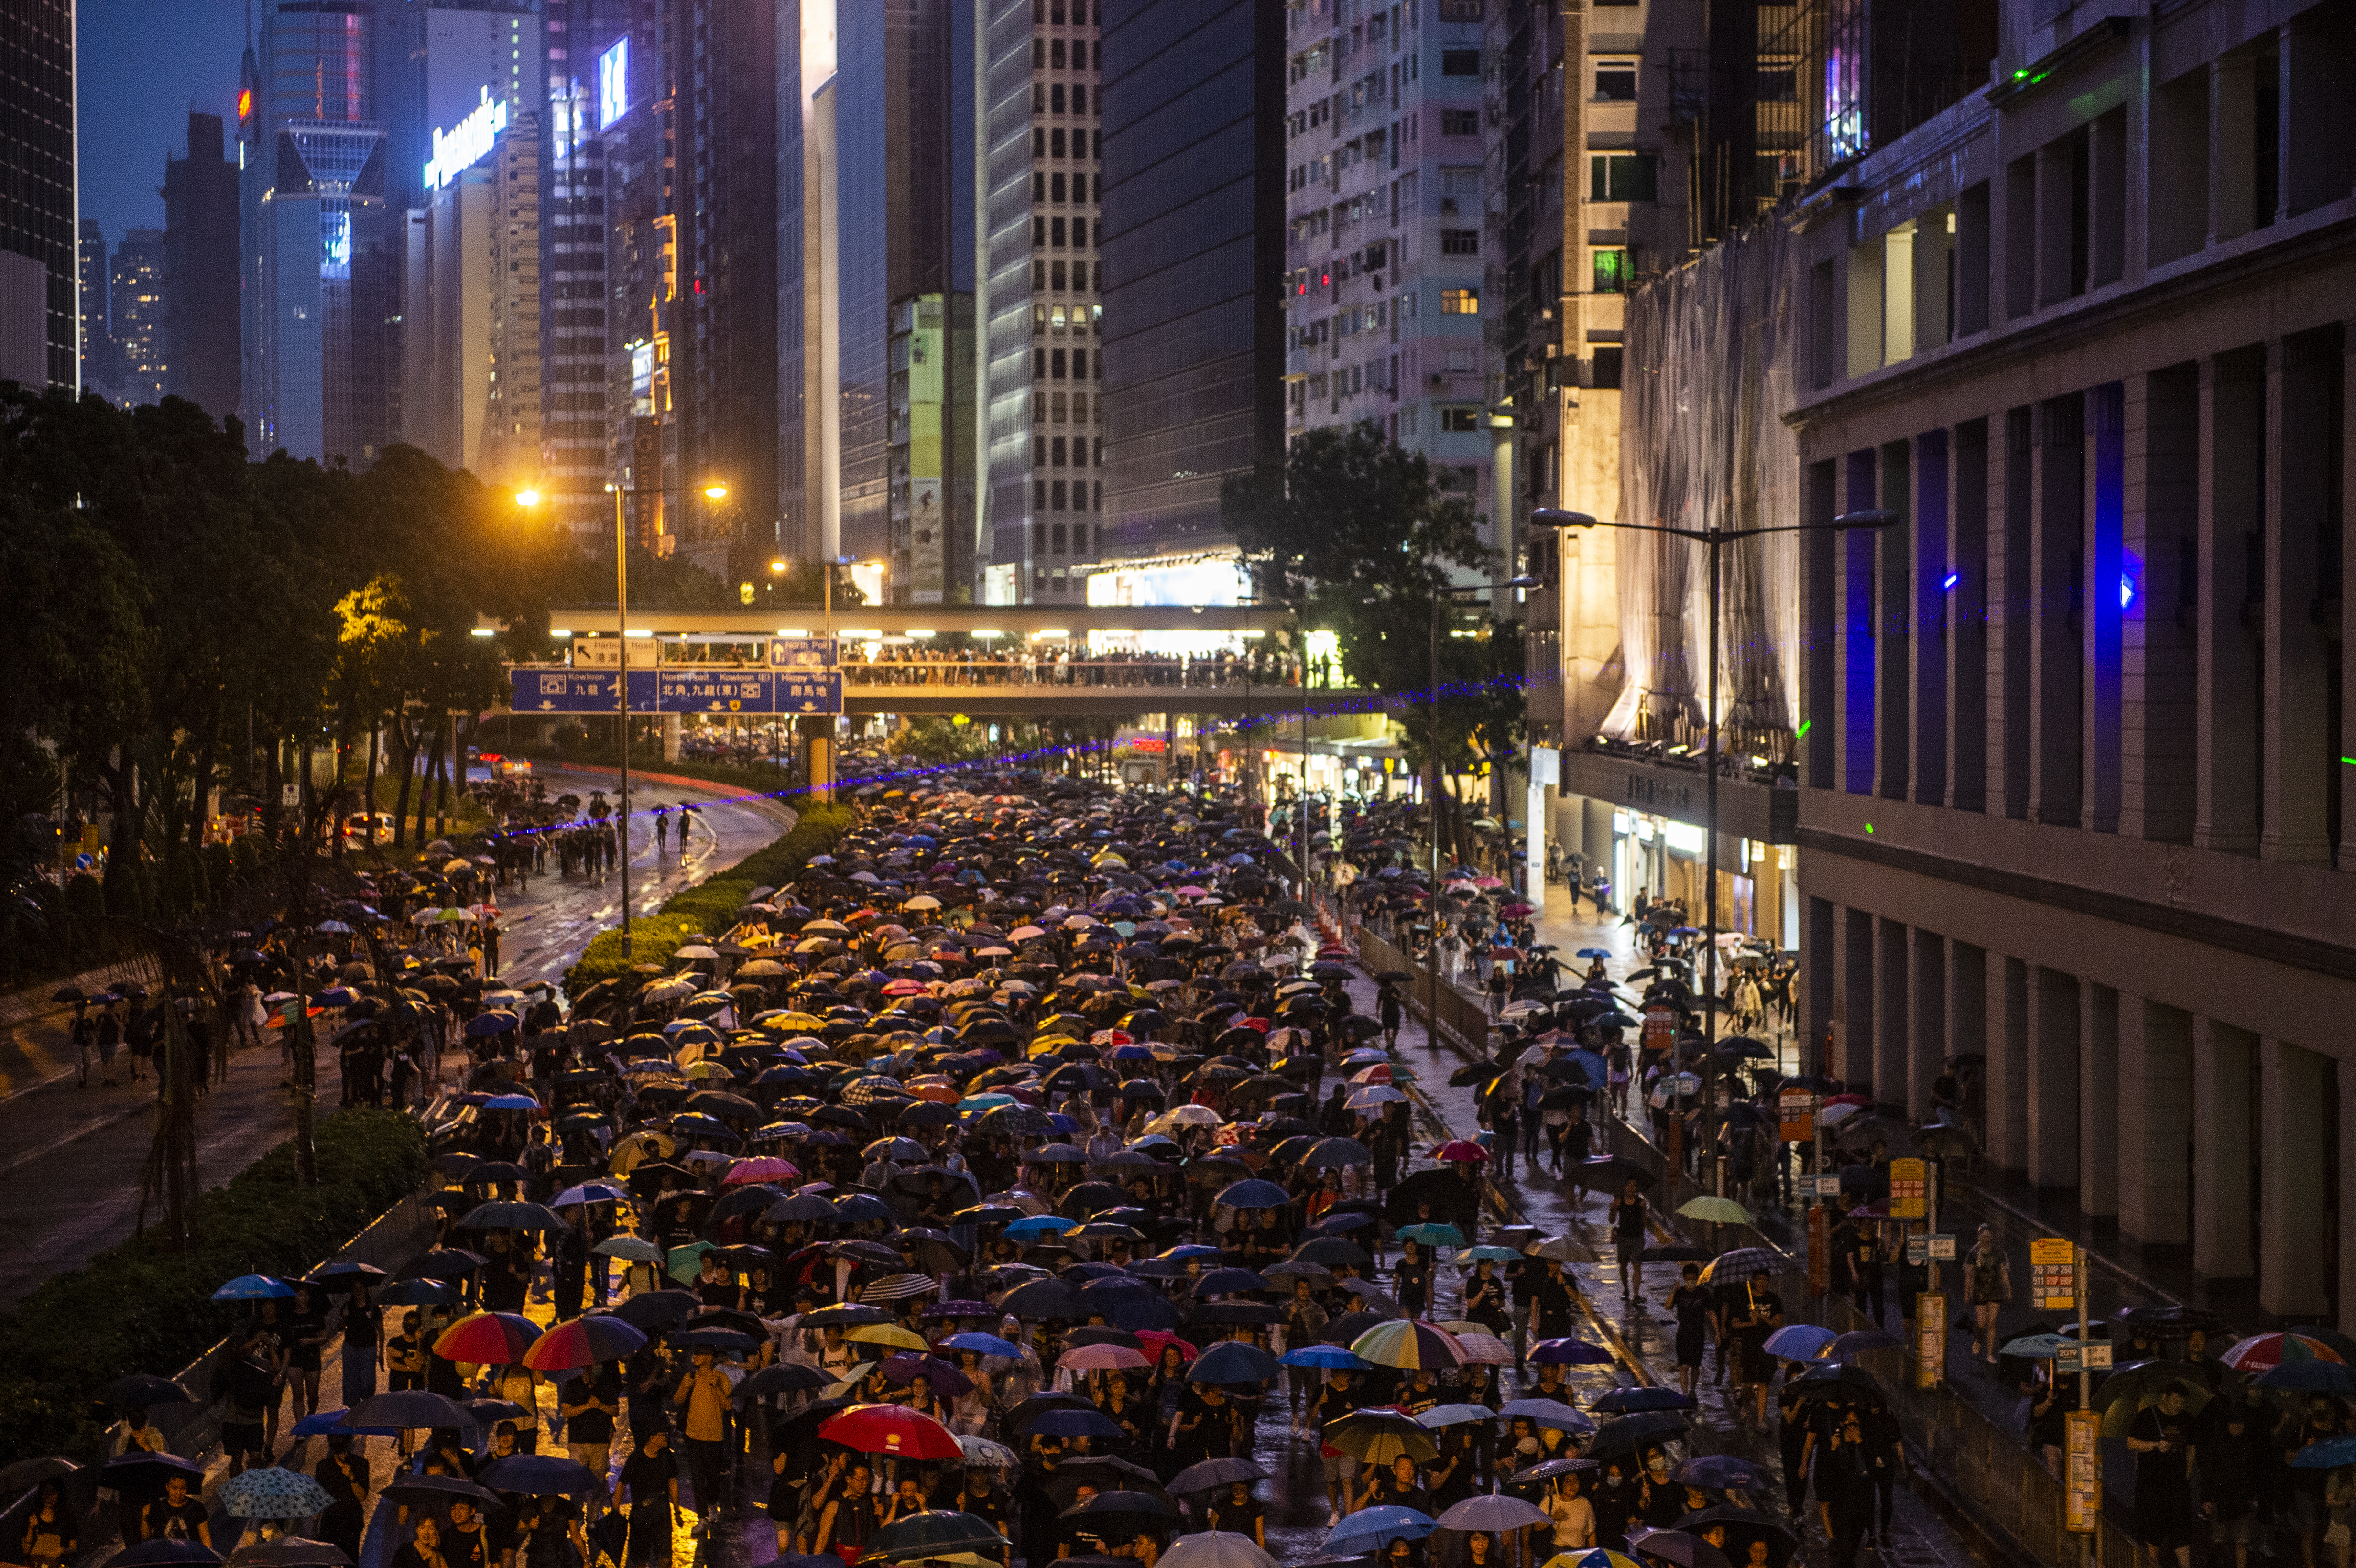 Demonstrators Attend Anti-Government Protest In Hong Kong